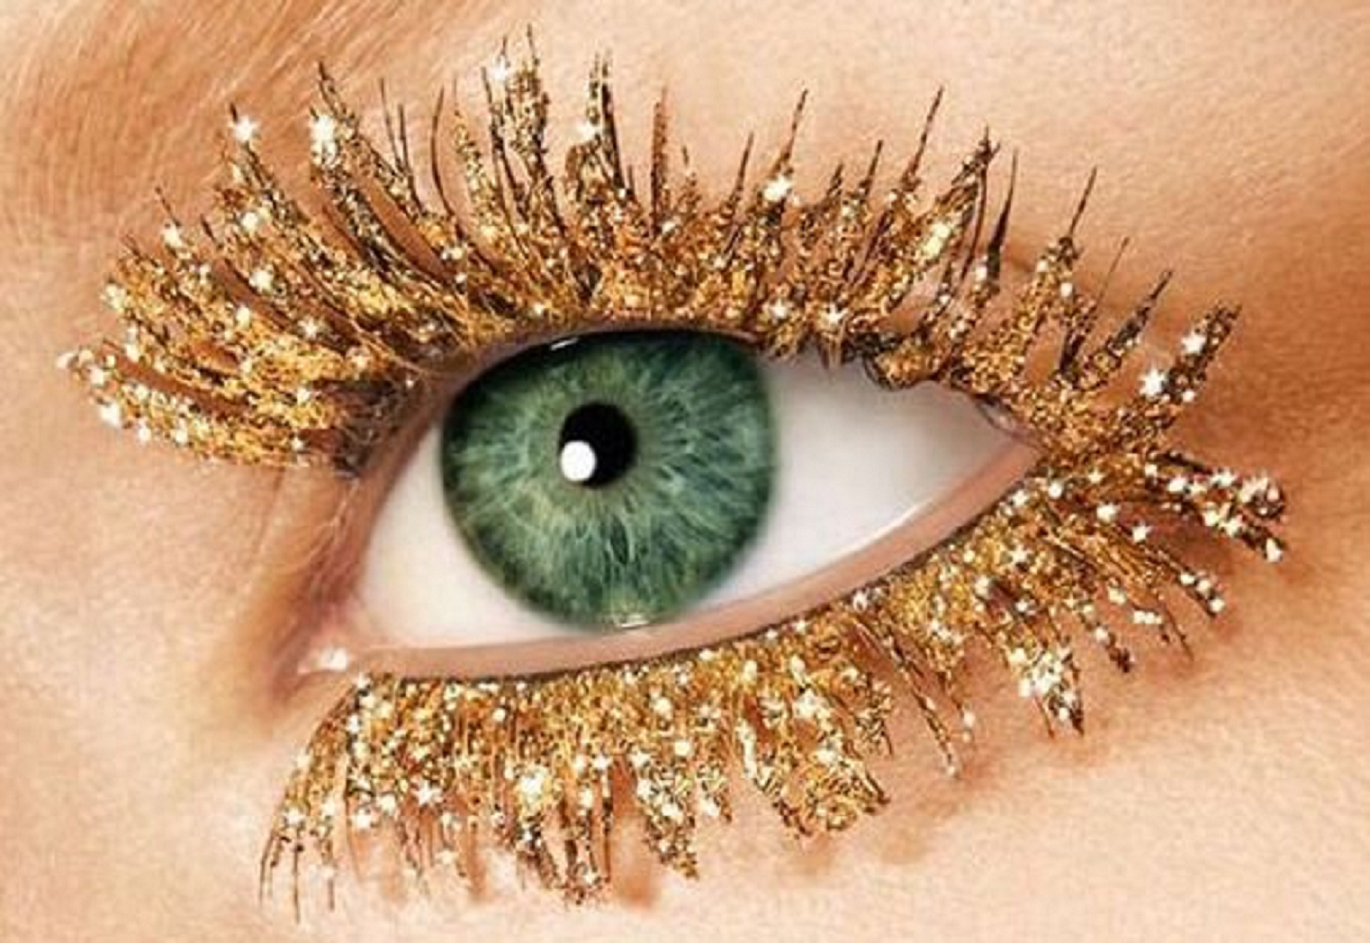 Bling makeup Obsessed with Sparkling Eyes with Gold Glittering Powder On The Eyelash